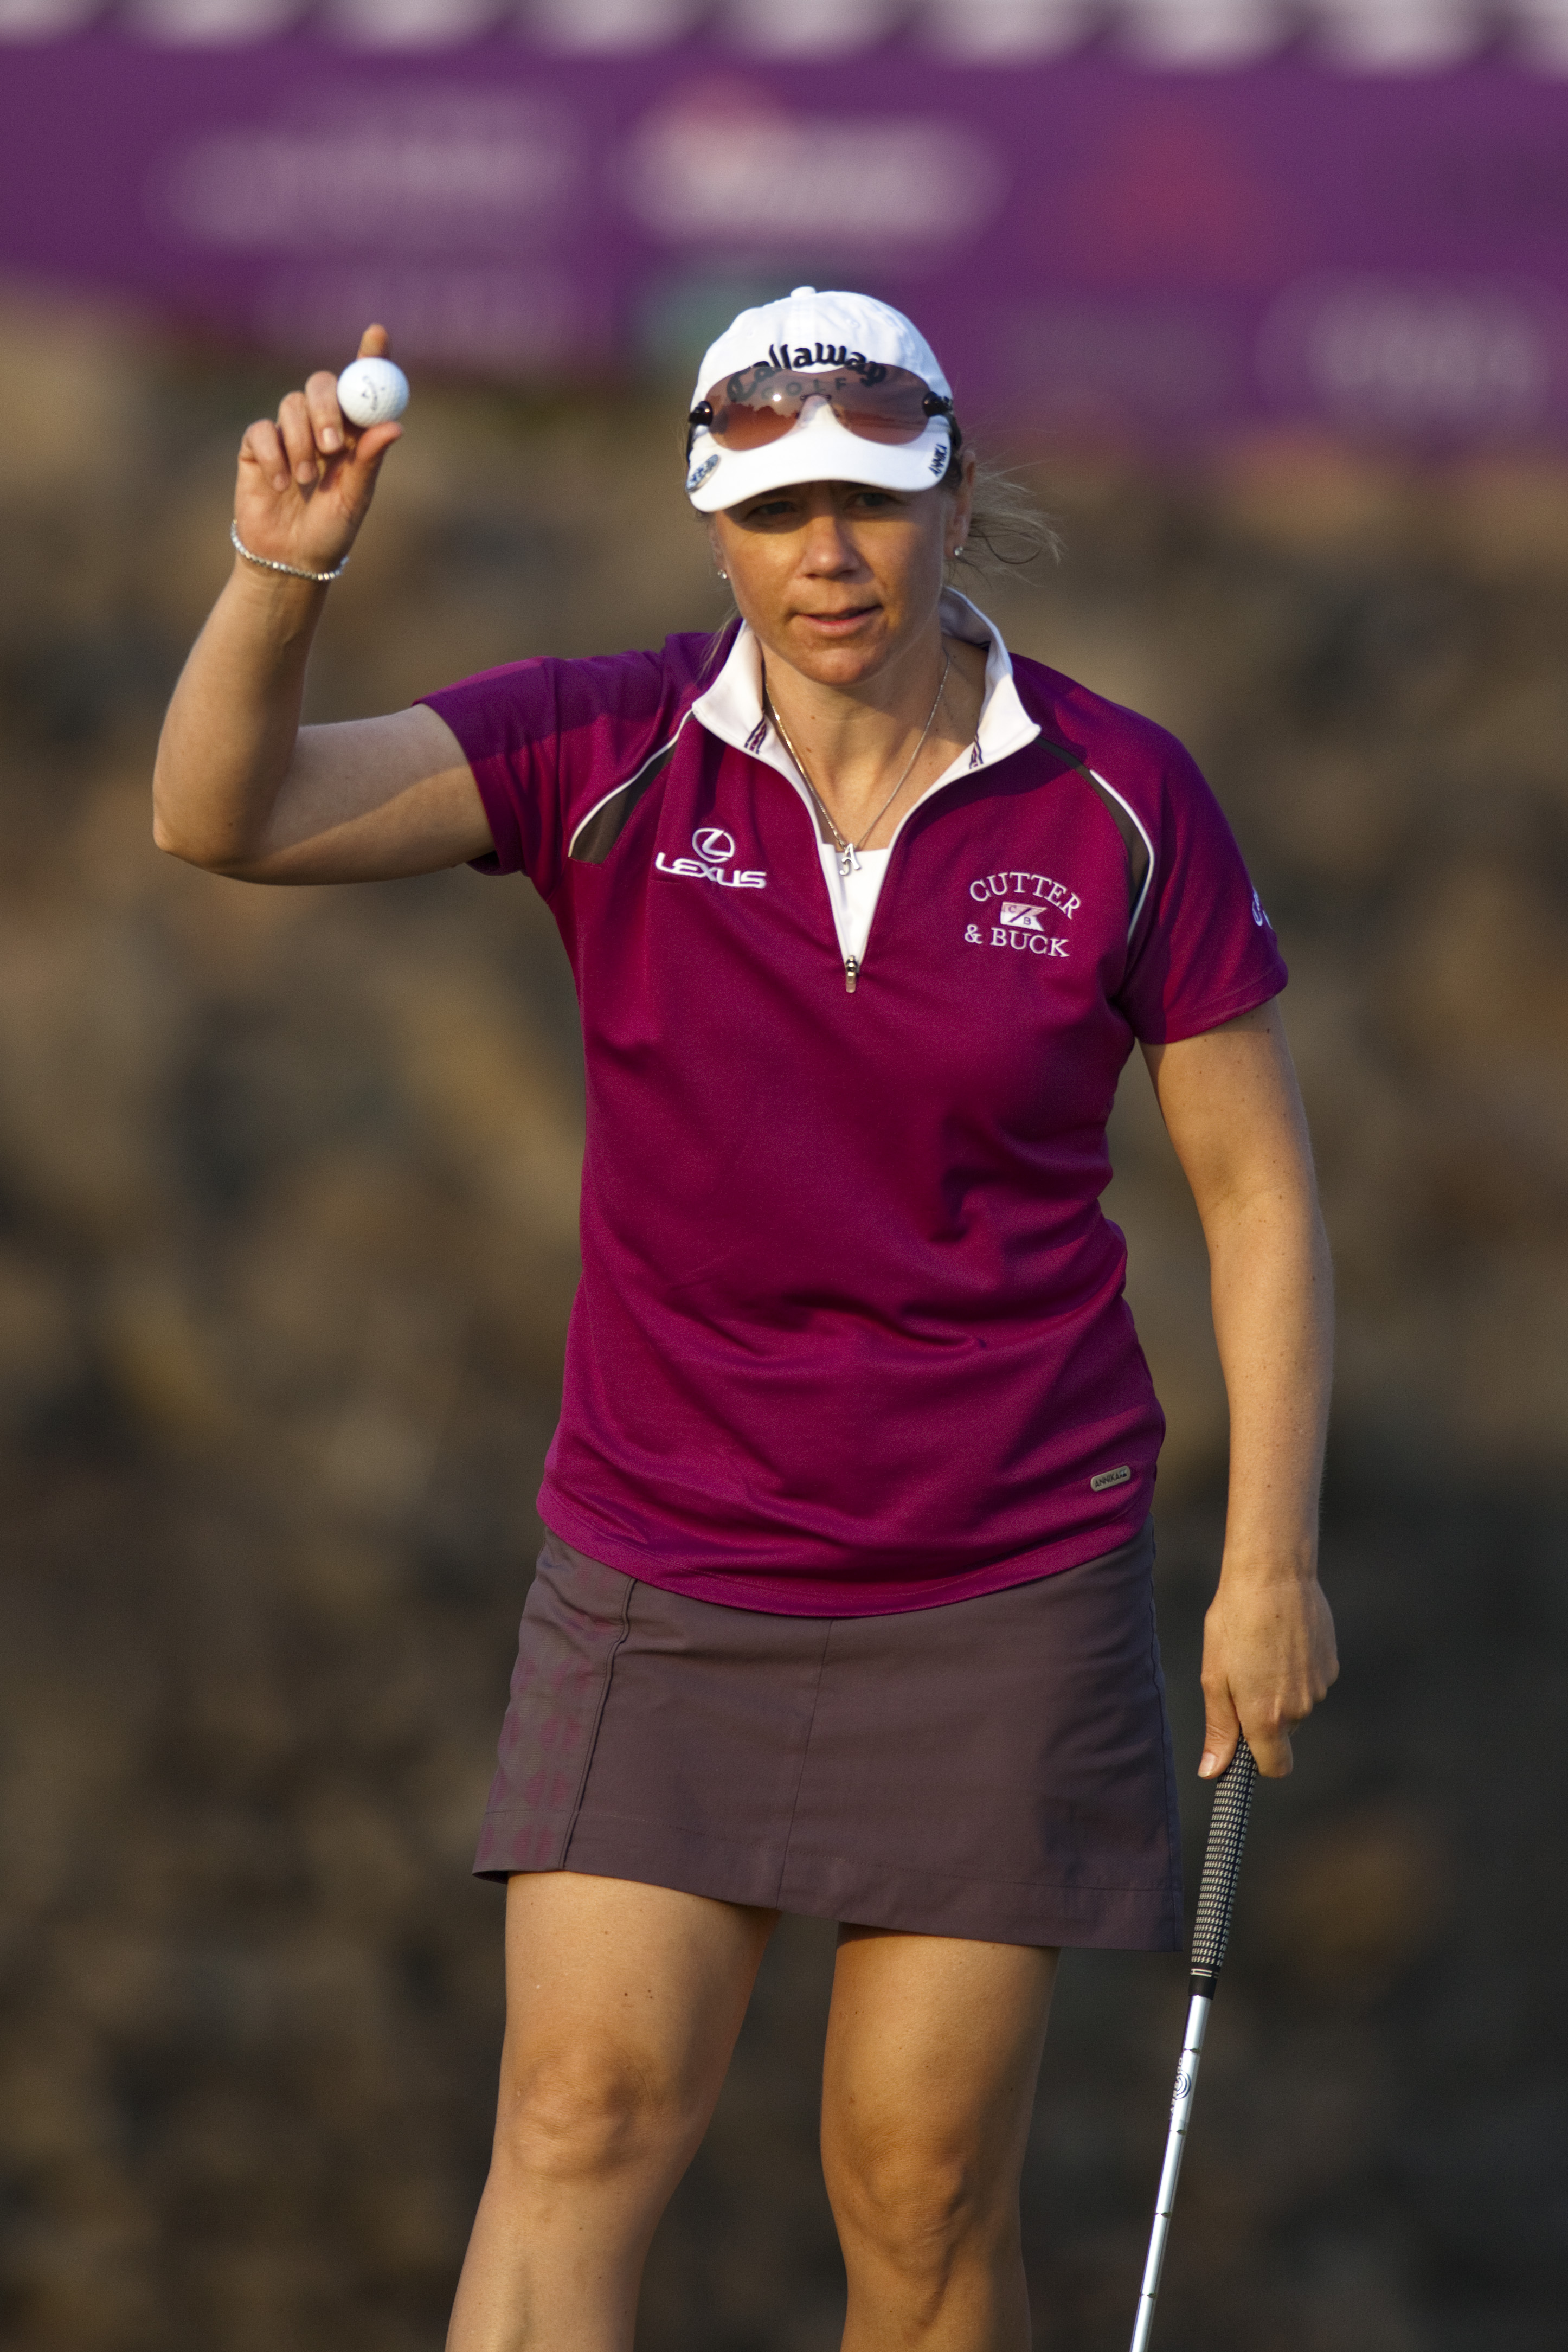 HAIKOU, CHINA - OCTOBER 30:  Golfer Annika Sorenstam of Sweden waves to crowd during day four of the Mission Hills Start Trophy tournament at Mission Hills Resort on October 30, 2010 in Haikou, China. The Mission Hills Star Trophy is Asia's leading leisur